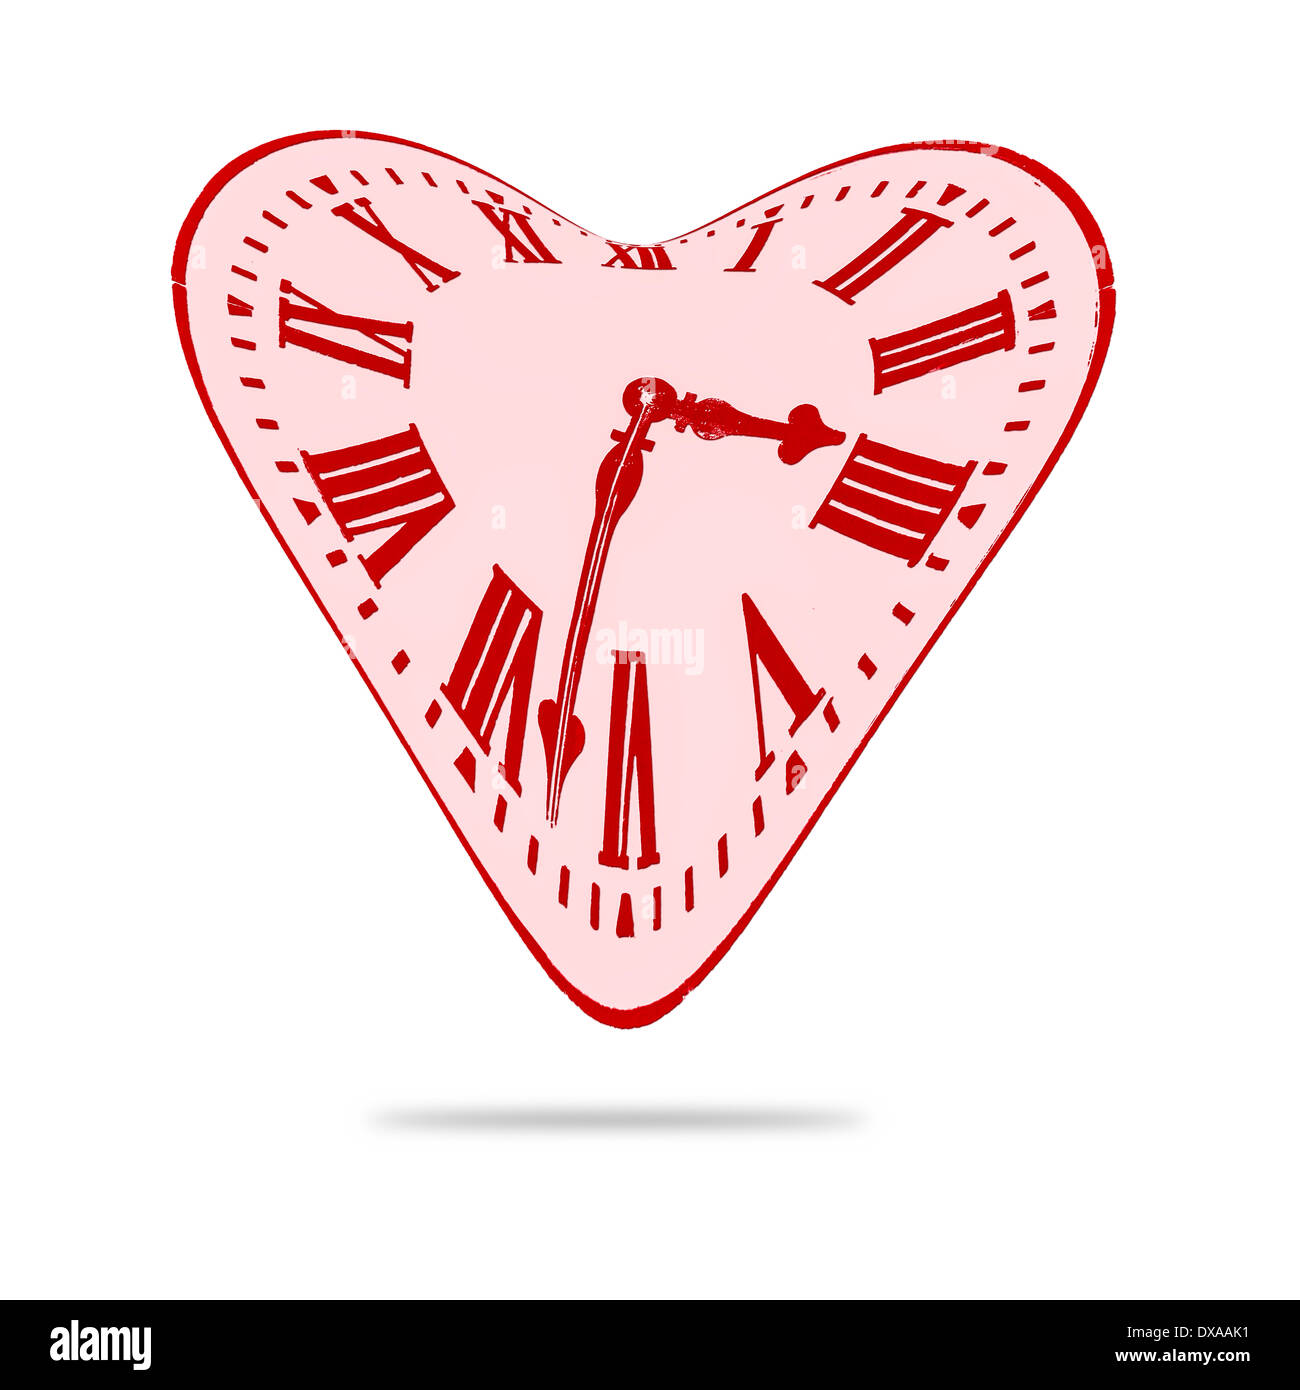 Abstract Love Heart Distorted Time Clock - Stock Image